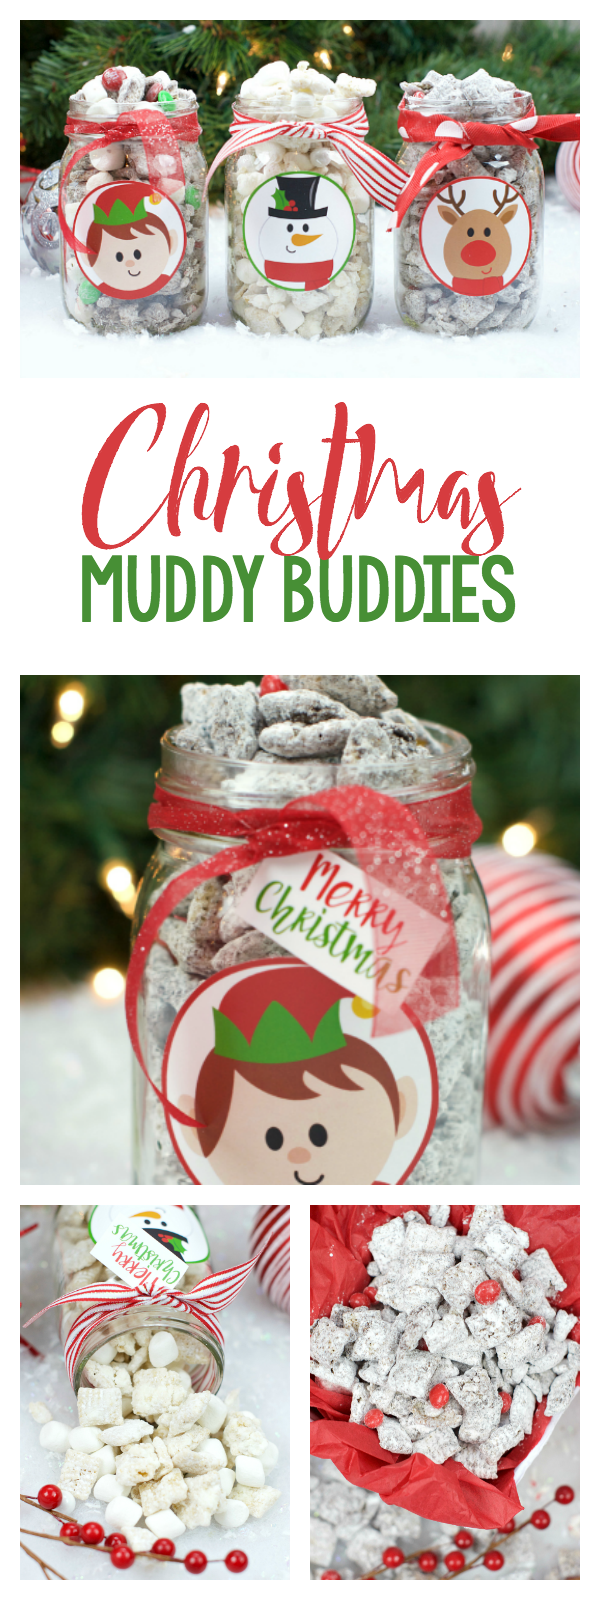 Christmas Muddy Buddies-This yummy Christmas treat is sure to please! Three different flavors and cute gift tags to package them up and make them gifts if you'd like! Great neighbor gift idea or a fun treat for a Christmas party! #christmasparty #christmastreats